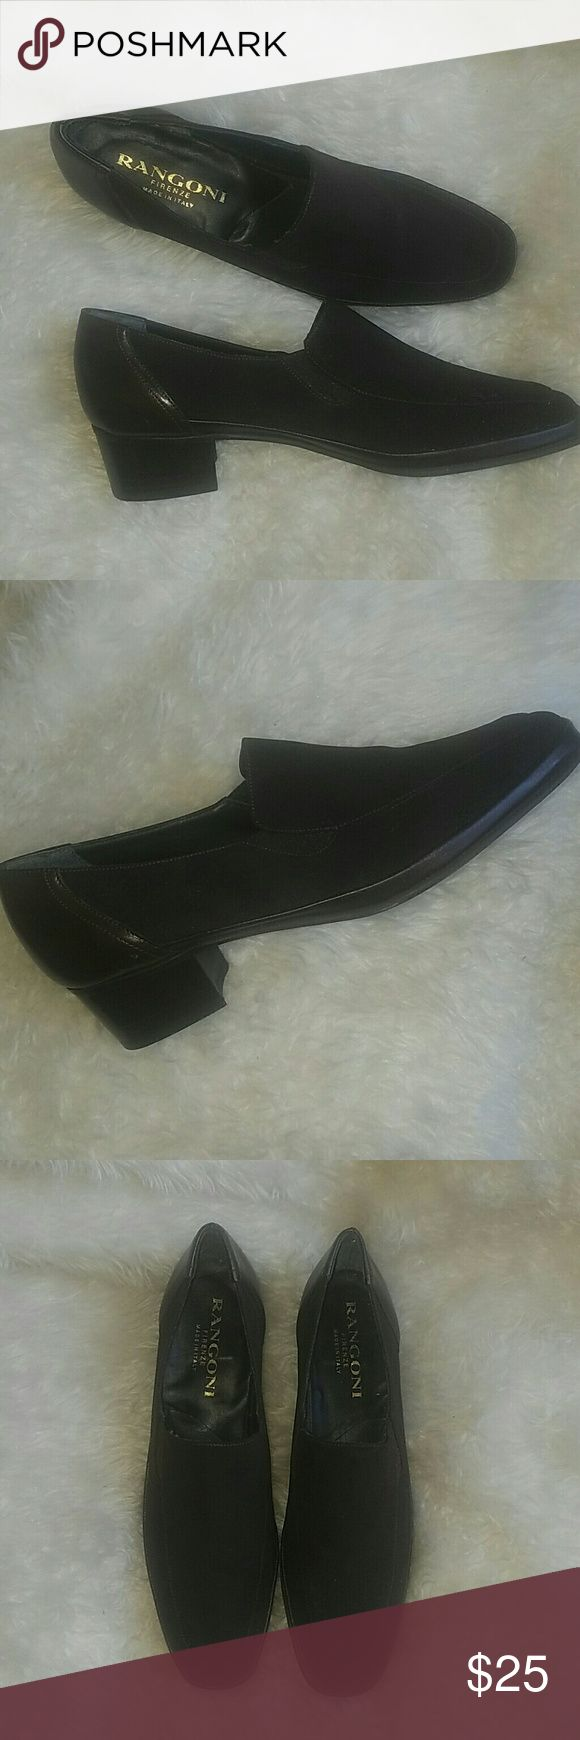 Italian heeled loafers Absolutely gorgeous chocolate brown leather and cloth Italian loafers, worn once. Stored with tissue in toe to keep shape. Rangoni Firenze Shoes Flats & Loafers